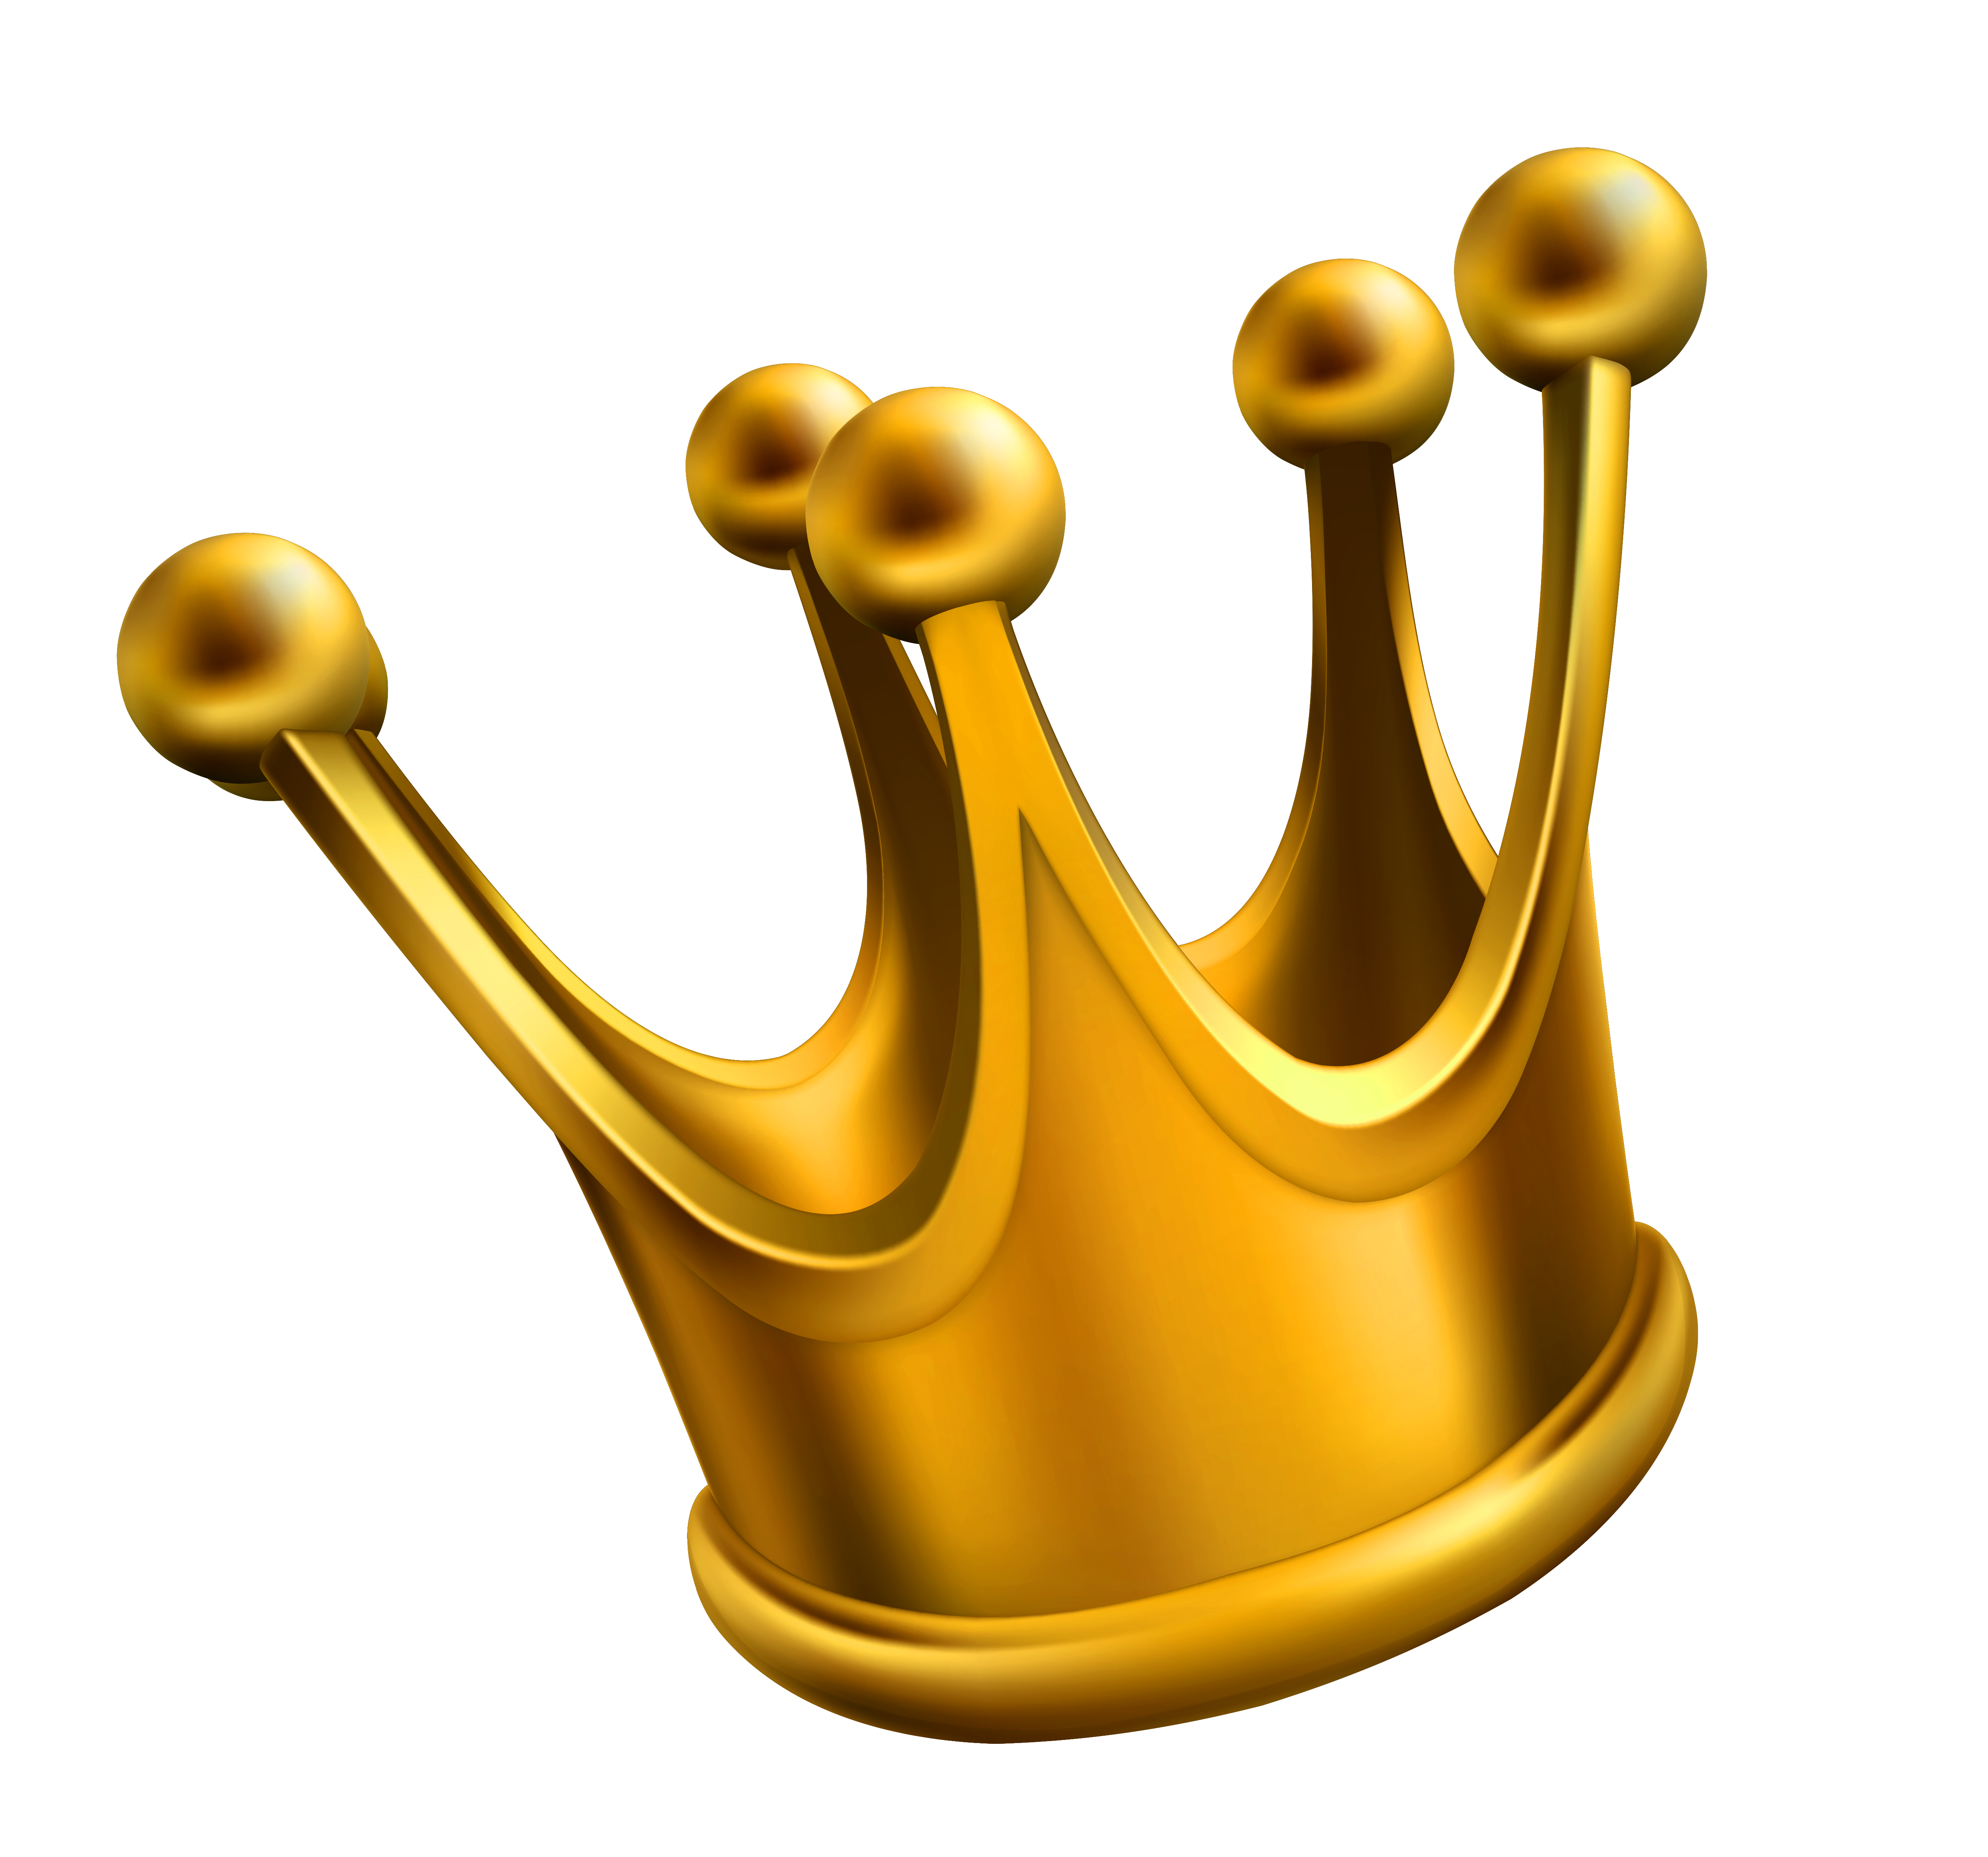 5182x4840 Golden Crown Png Clipart Pictureu200b Gallery Yopriceville